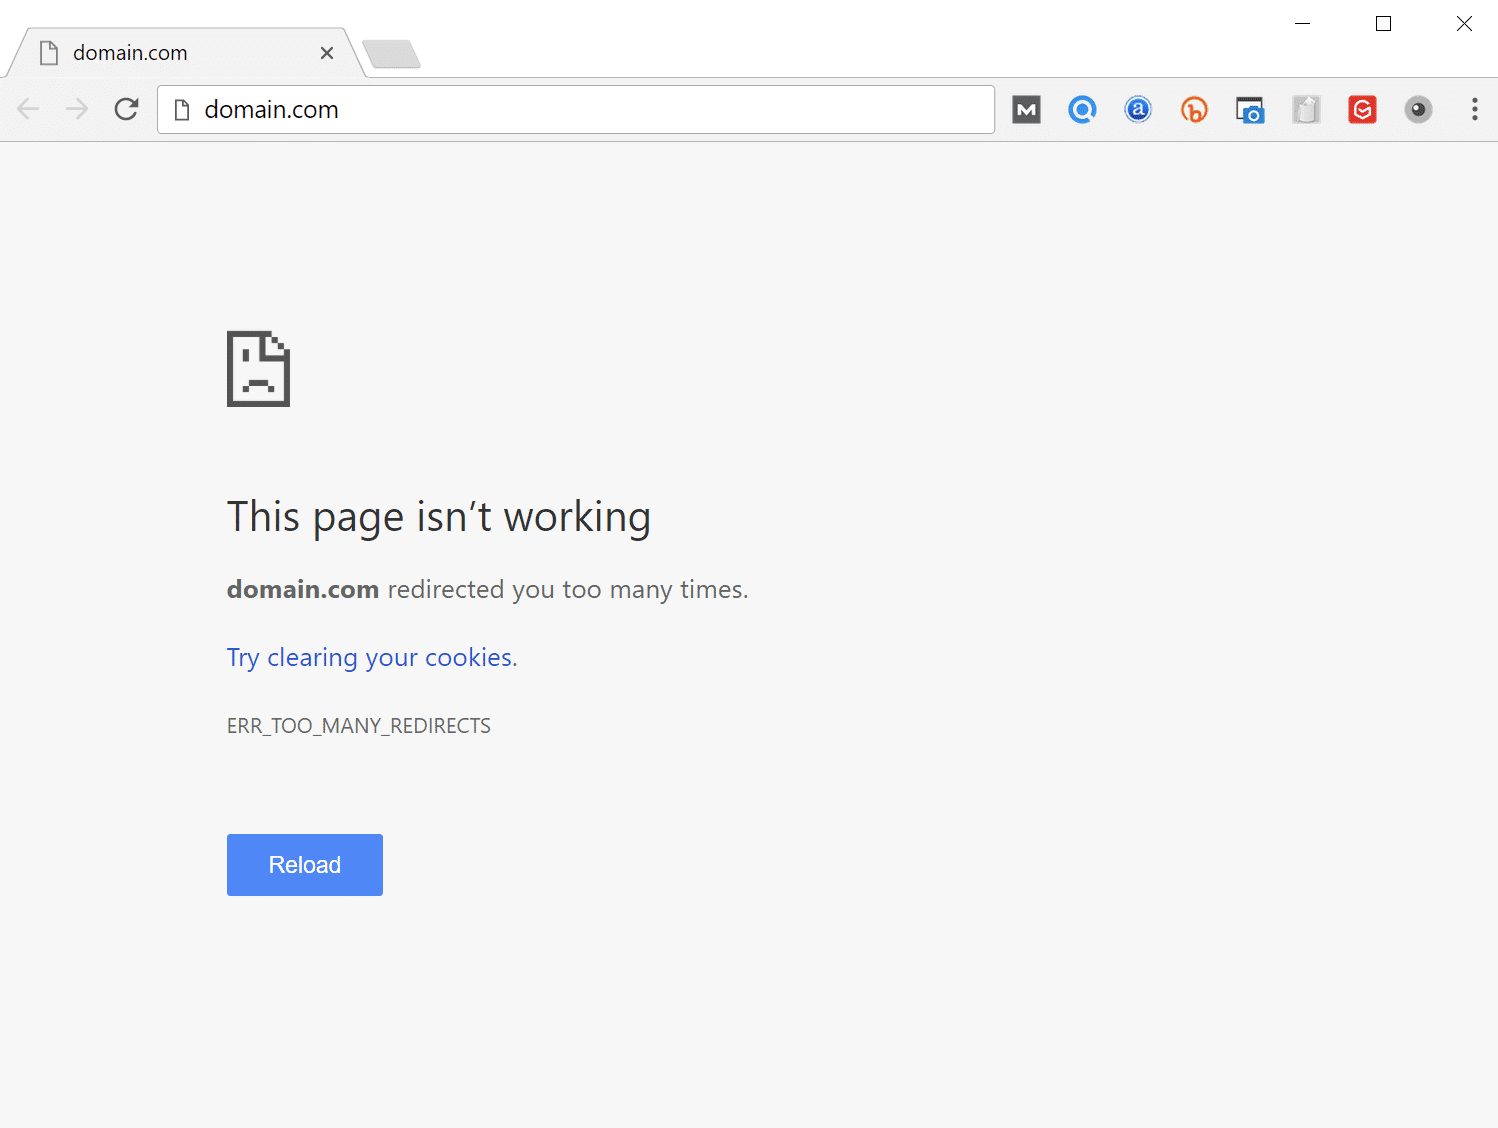 In Google Chrome this error will show as ERR_TOO_MANY_REDIRECTS - How to Fix ERR_TOO_MANY_REDIRECTS on Your WordPress Site